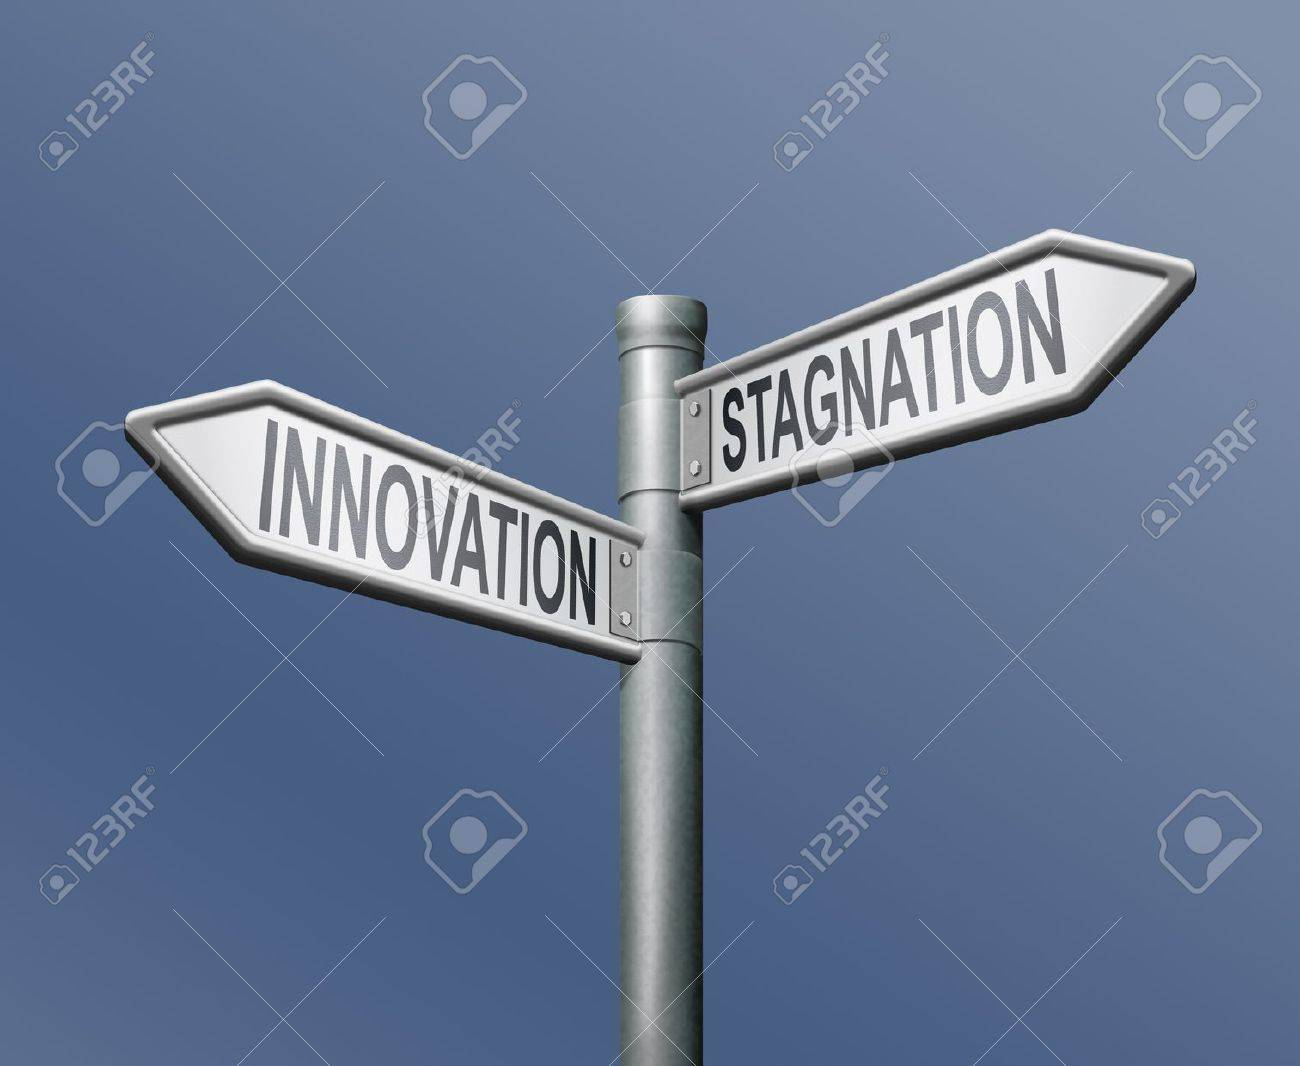 innovation stagnation road sign arrow progress or standing still innovate and move ahead become market leader Stock Photo - 8363727